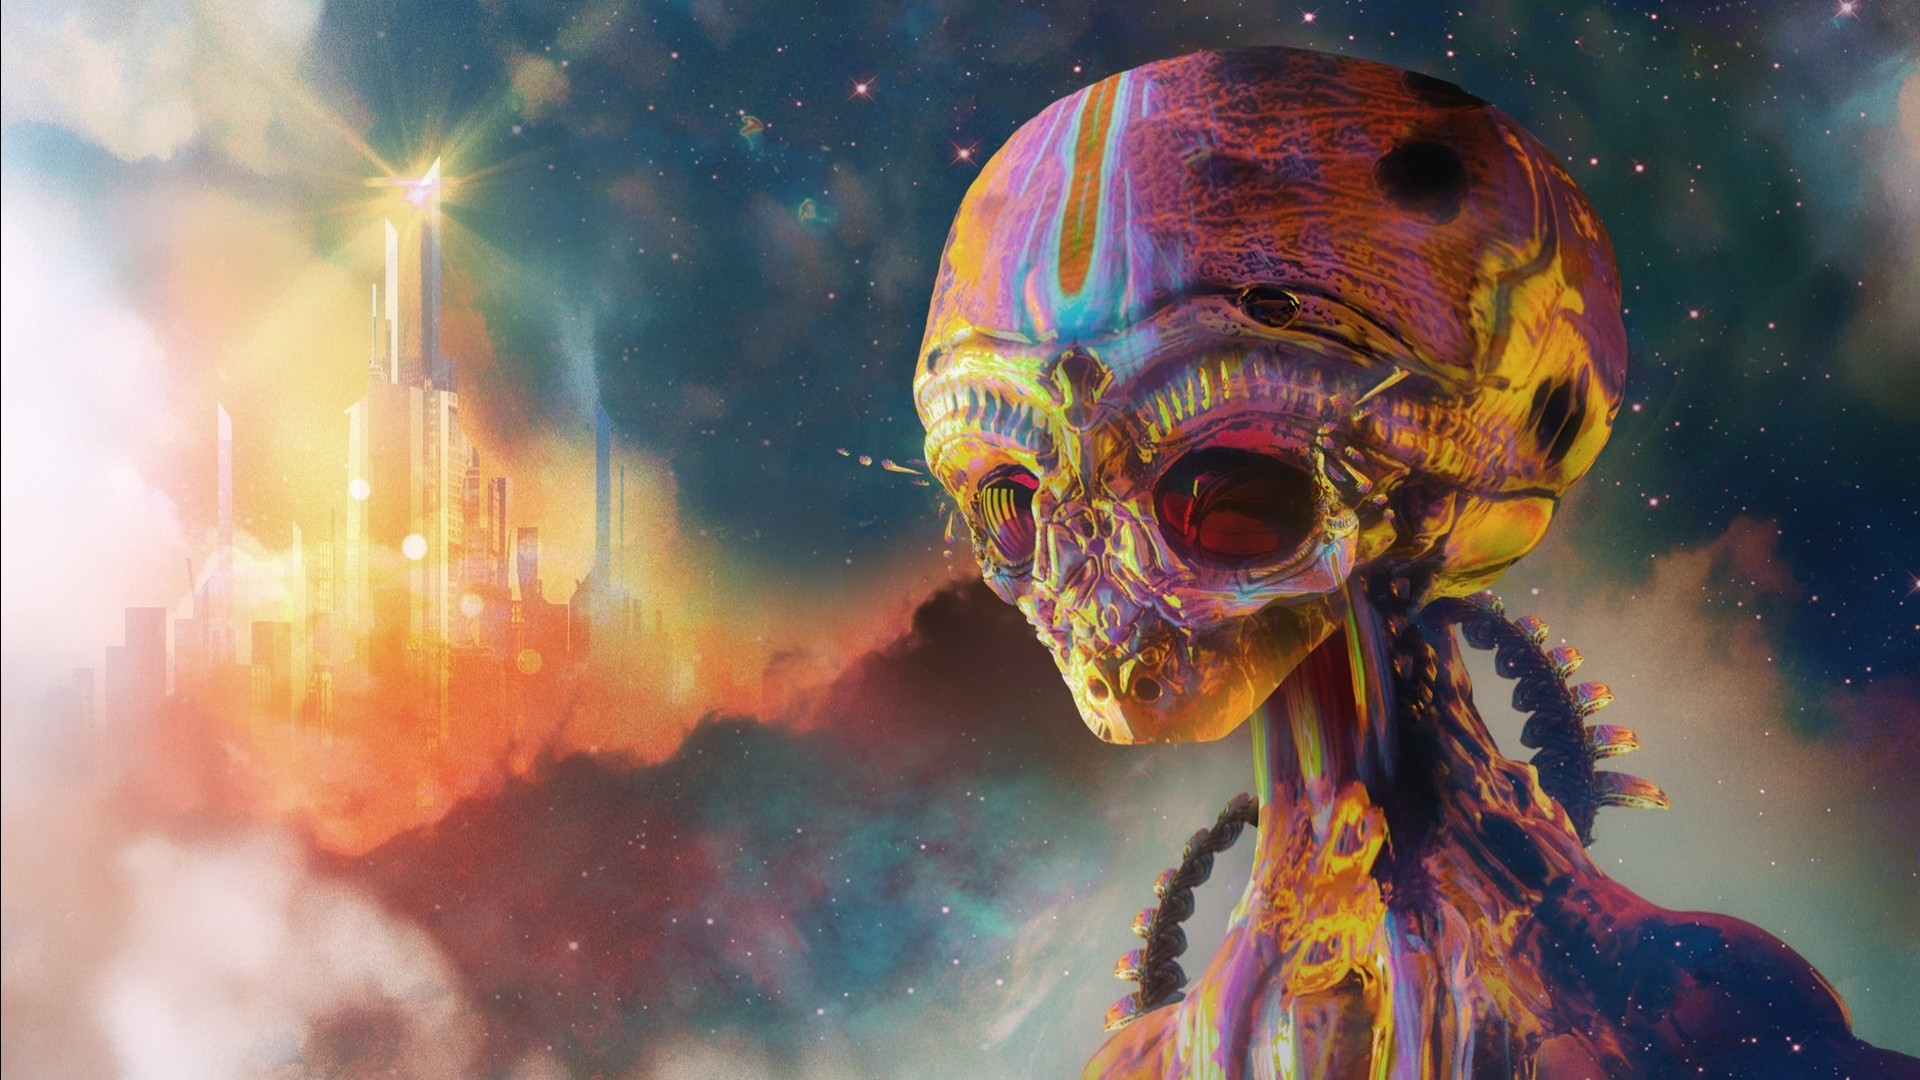 General 1920x1080 artwork digital art aliens psychedelic colorful science fiction